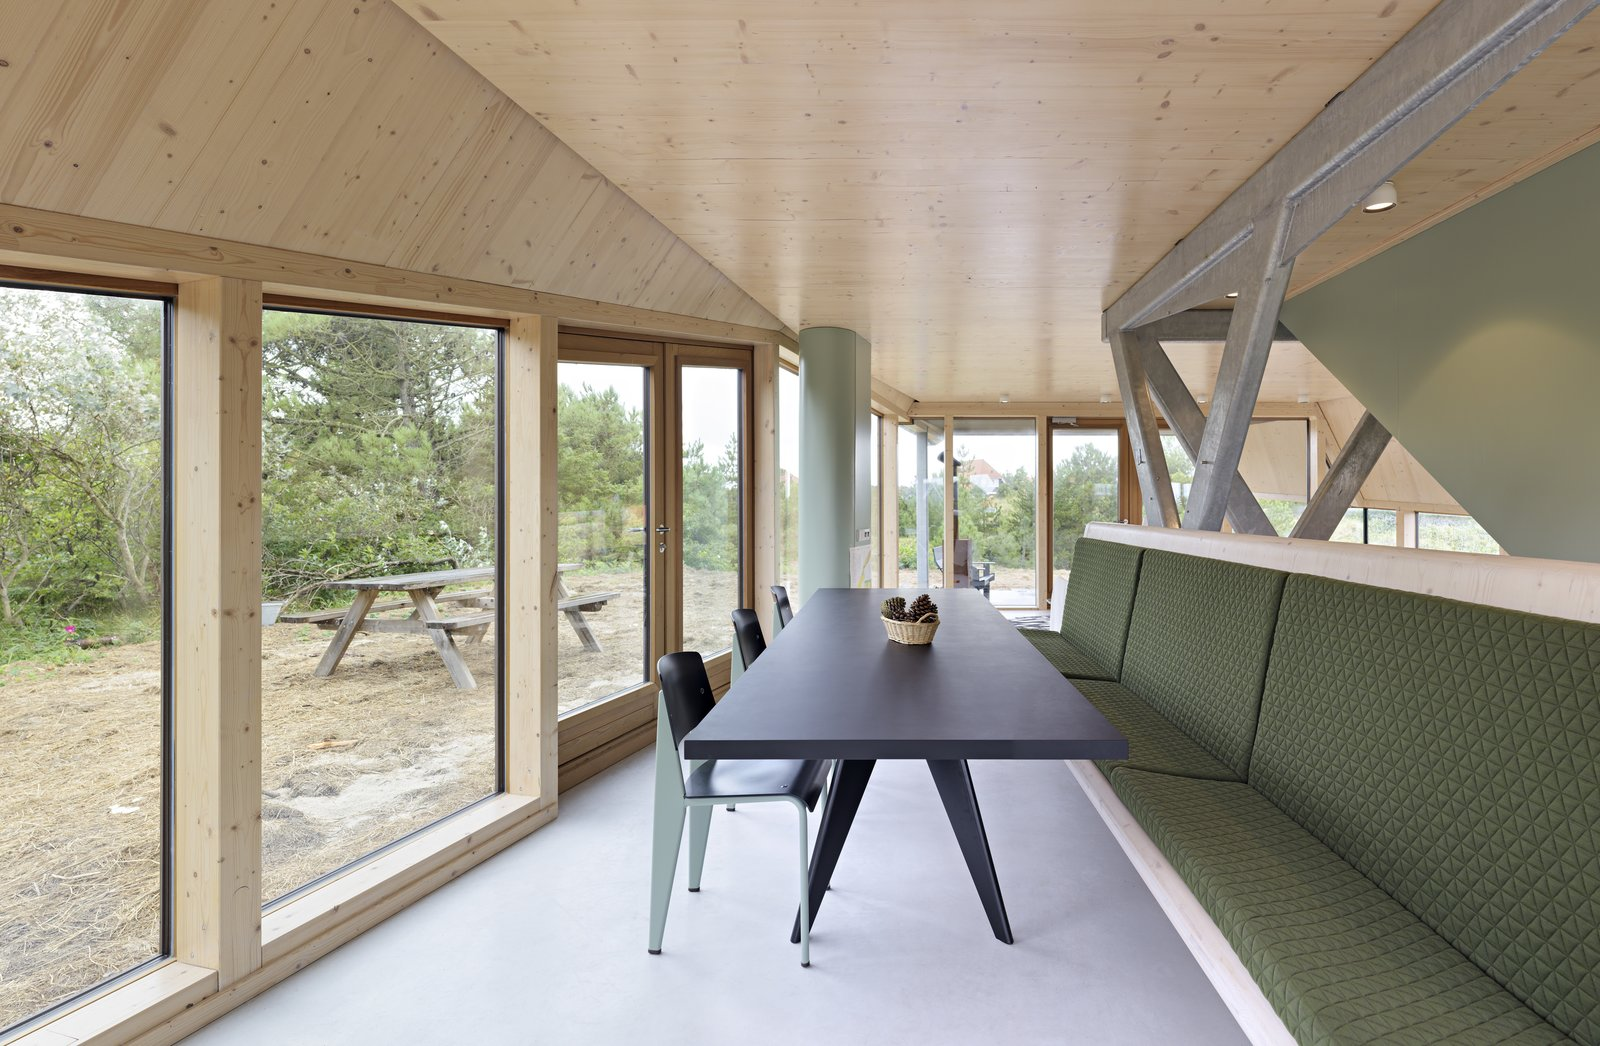 A dining table and bench that can accommodate the large family who use the summer home.